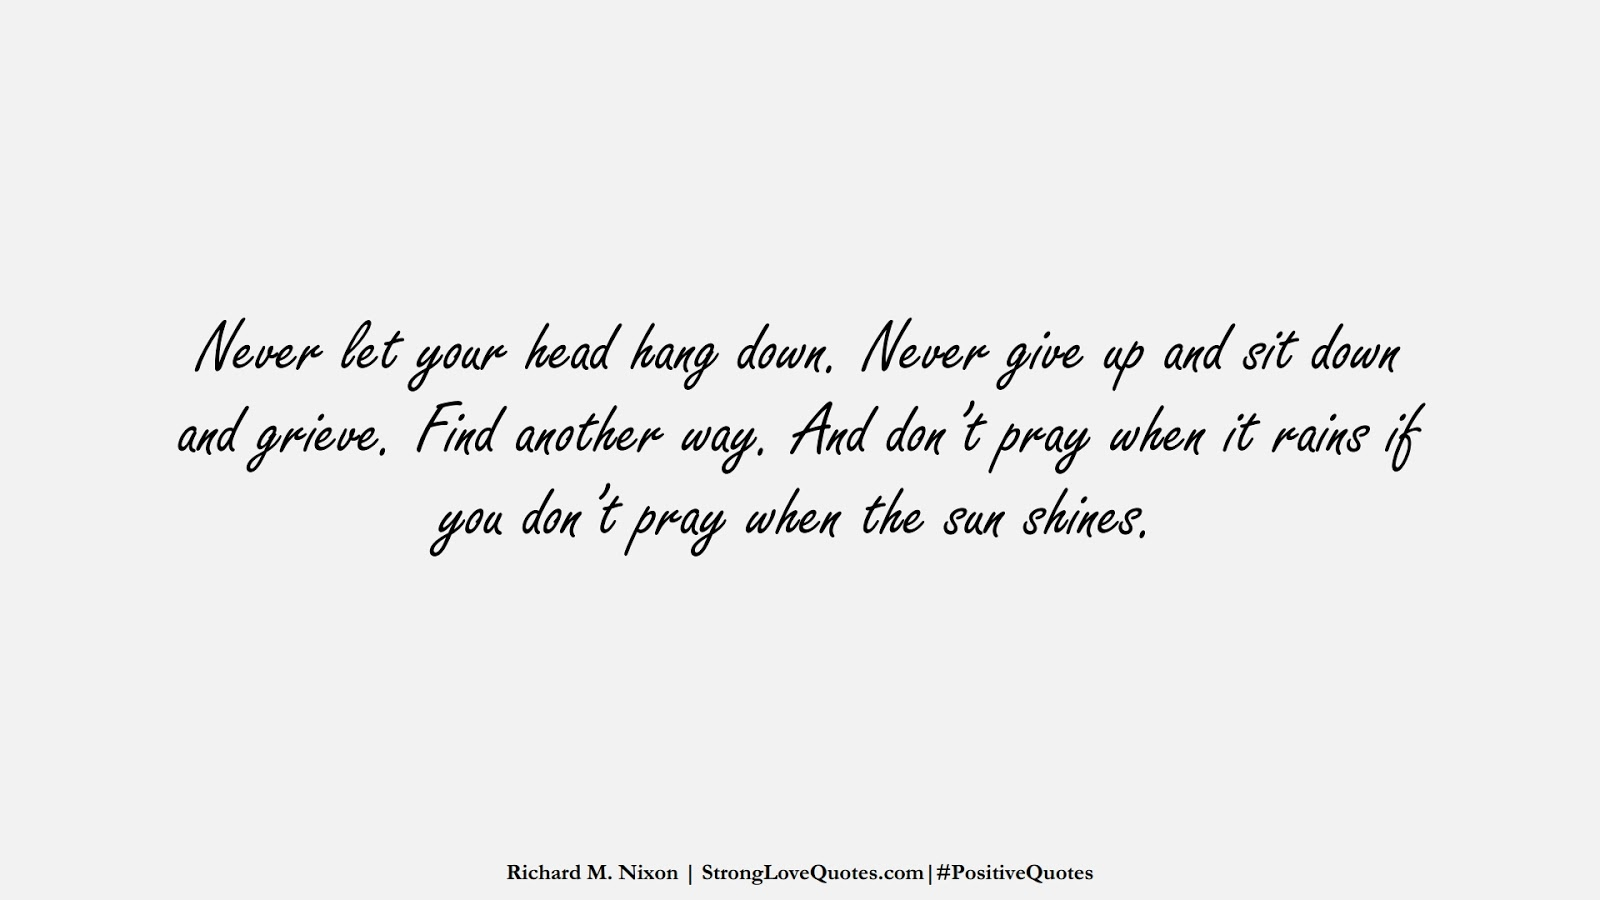 Never let your head hang down. Never give up and sit down and grieve. Find another way. And don't pray when it rains if you don't pray when the sun shines. (Richard M. Nixon);  #PositiveQuotes